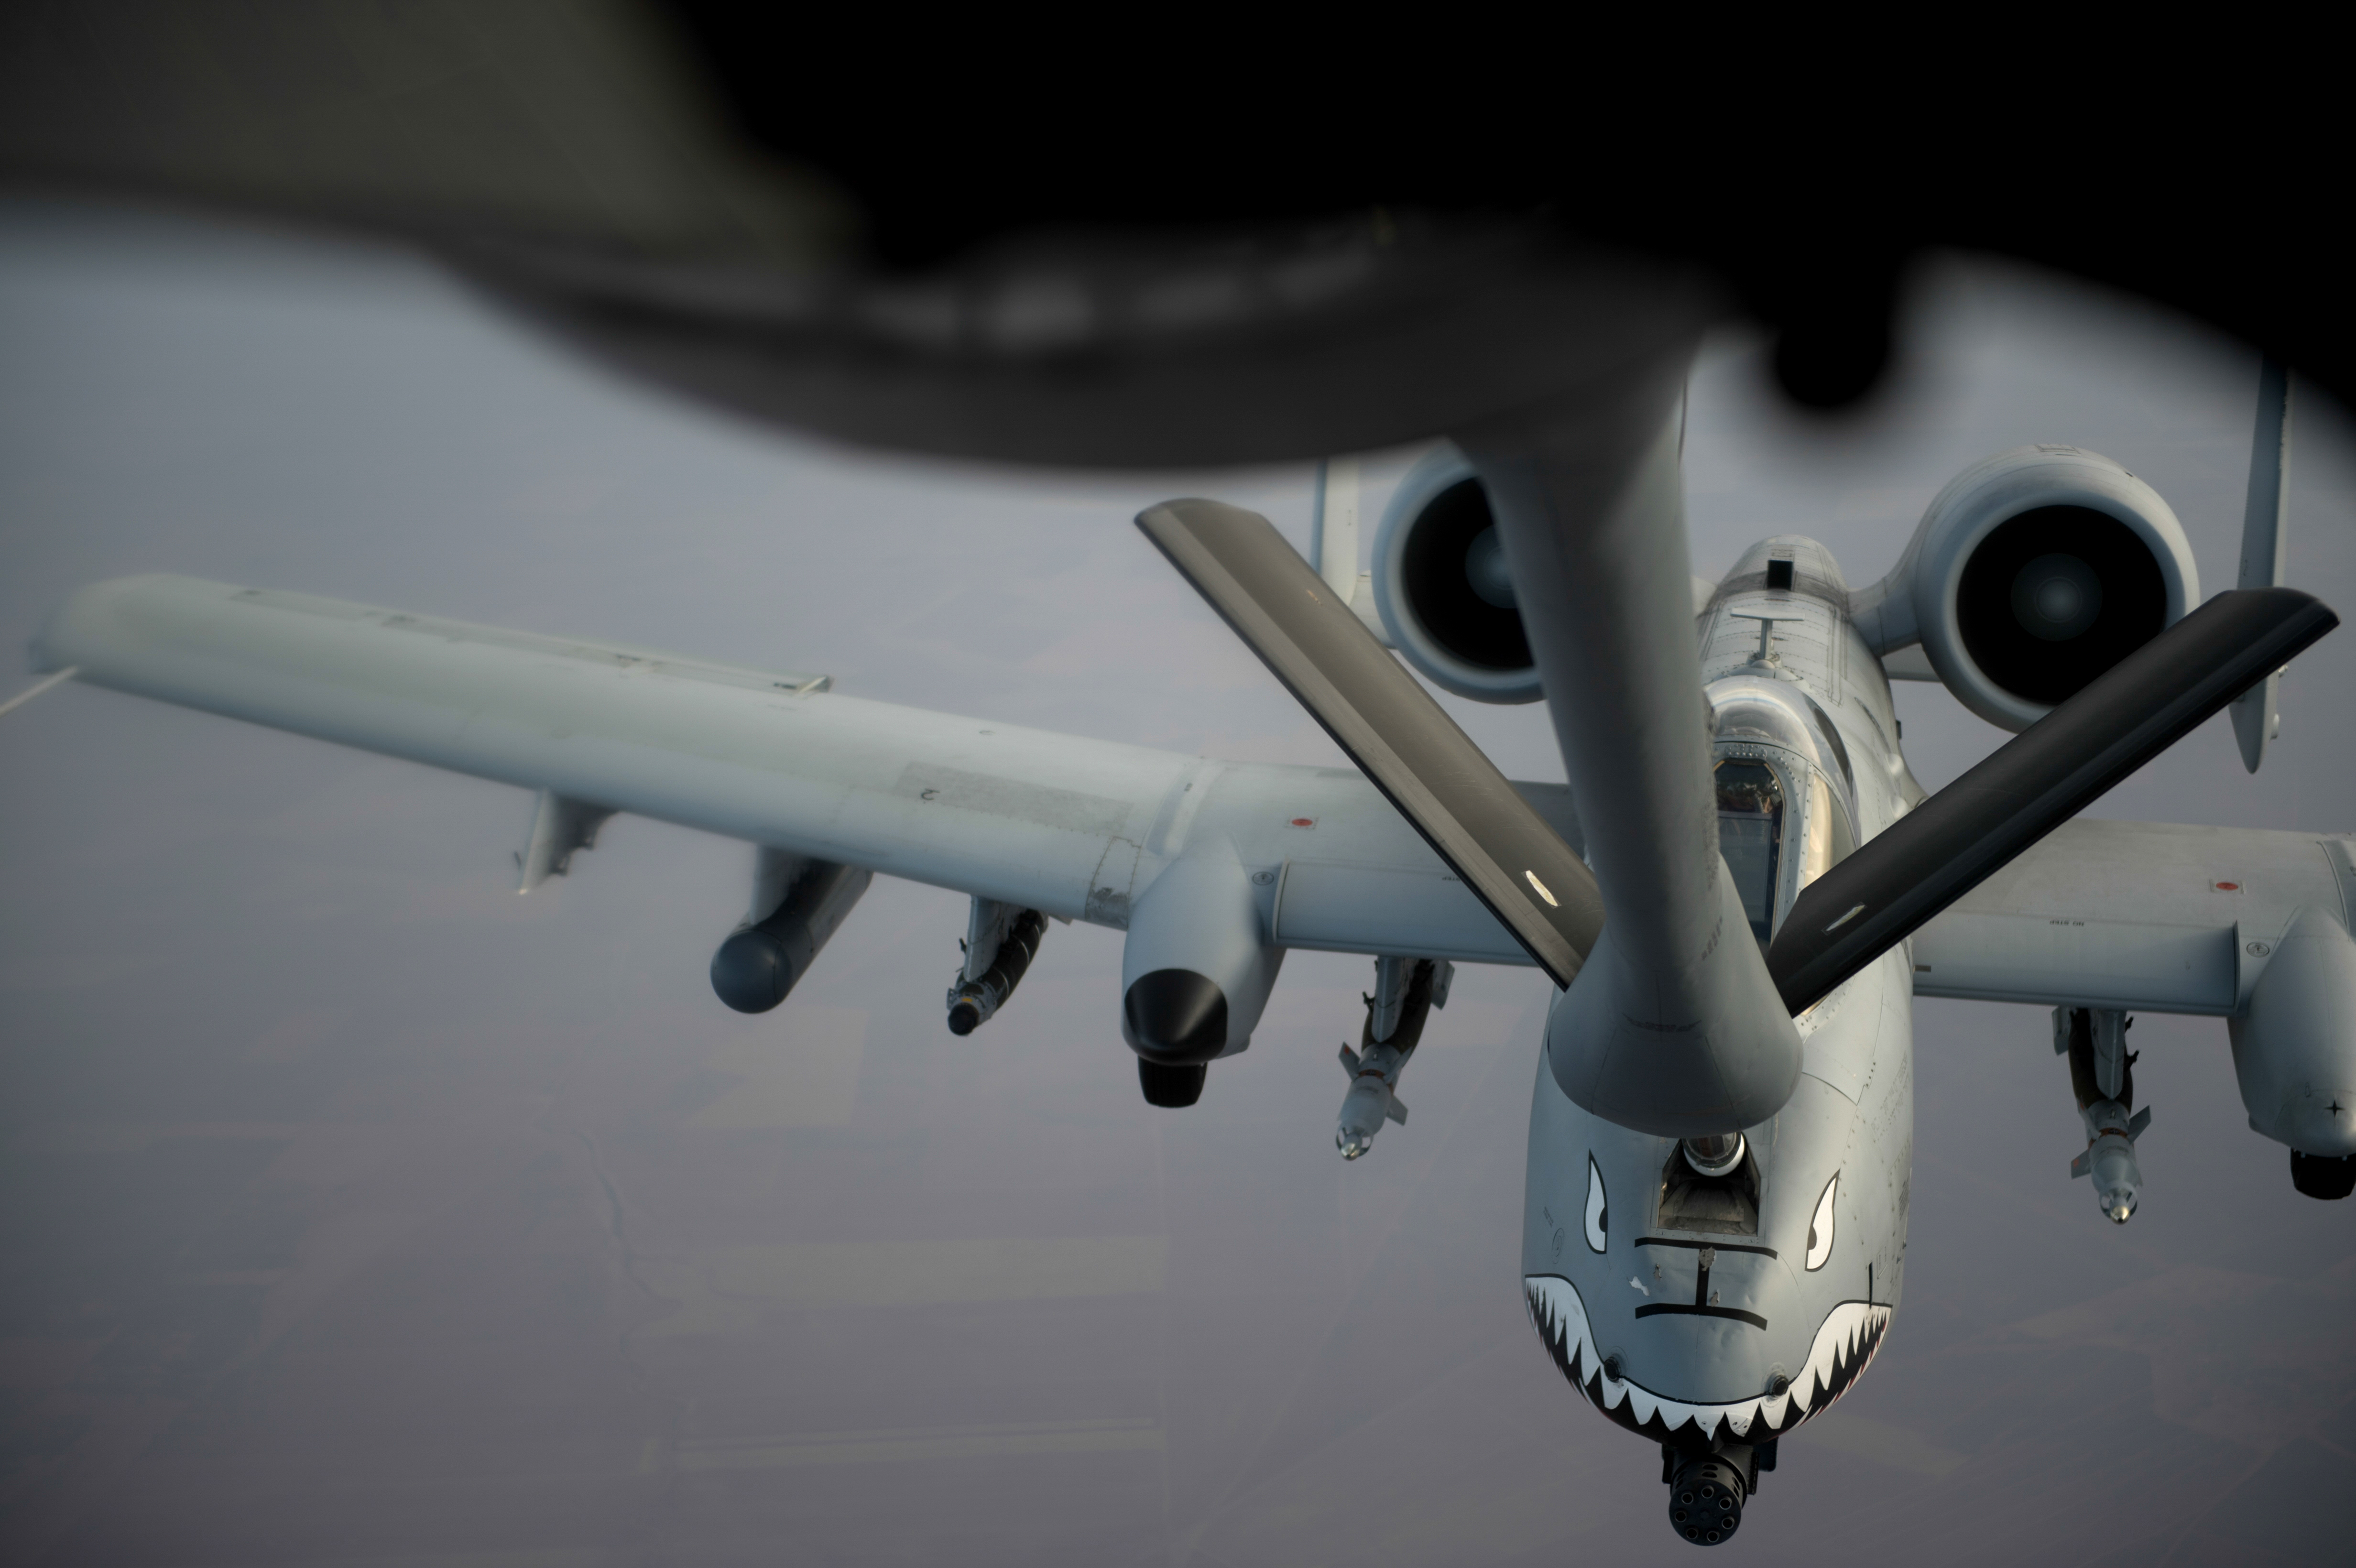 An U.S. Air Force KC-135 Stratotanker from the 340th Expeditionary Air Refueling Squadron refuels an U.S. Air Force A-10 Thunderbolt II over Southwest Asia in support of Operation Inherent Resolve, Oct. 29, 2015. OIR is the coalition intervention against Daesh. (U.S. Air Force photo by Tech. Sgt. Nathan Lipscomb)